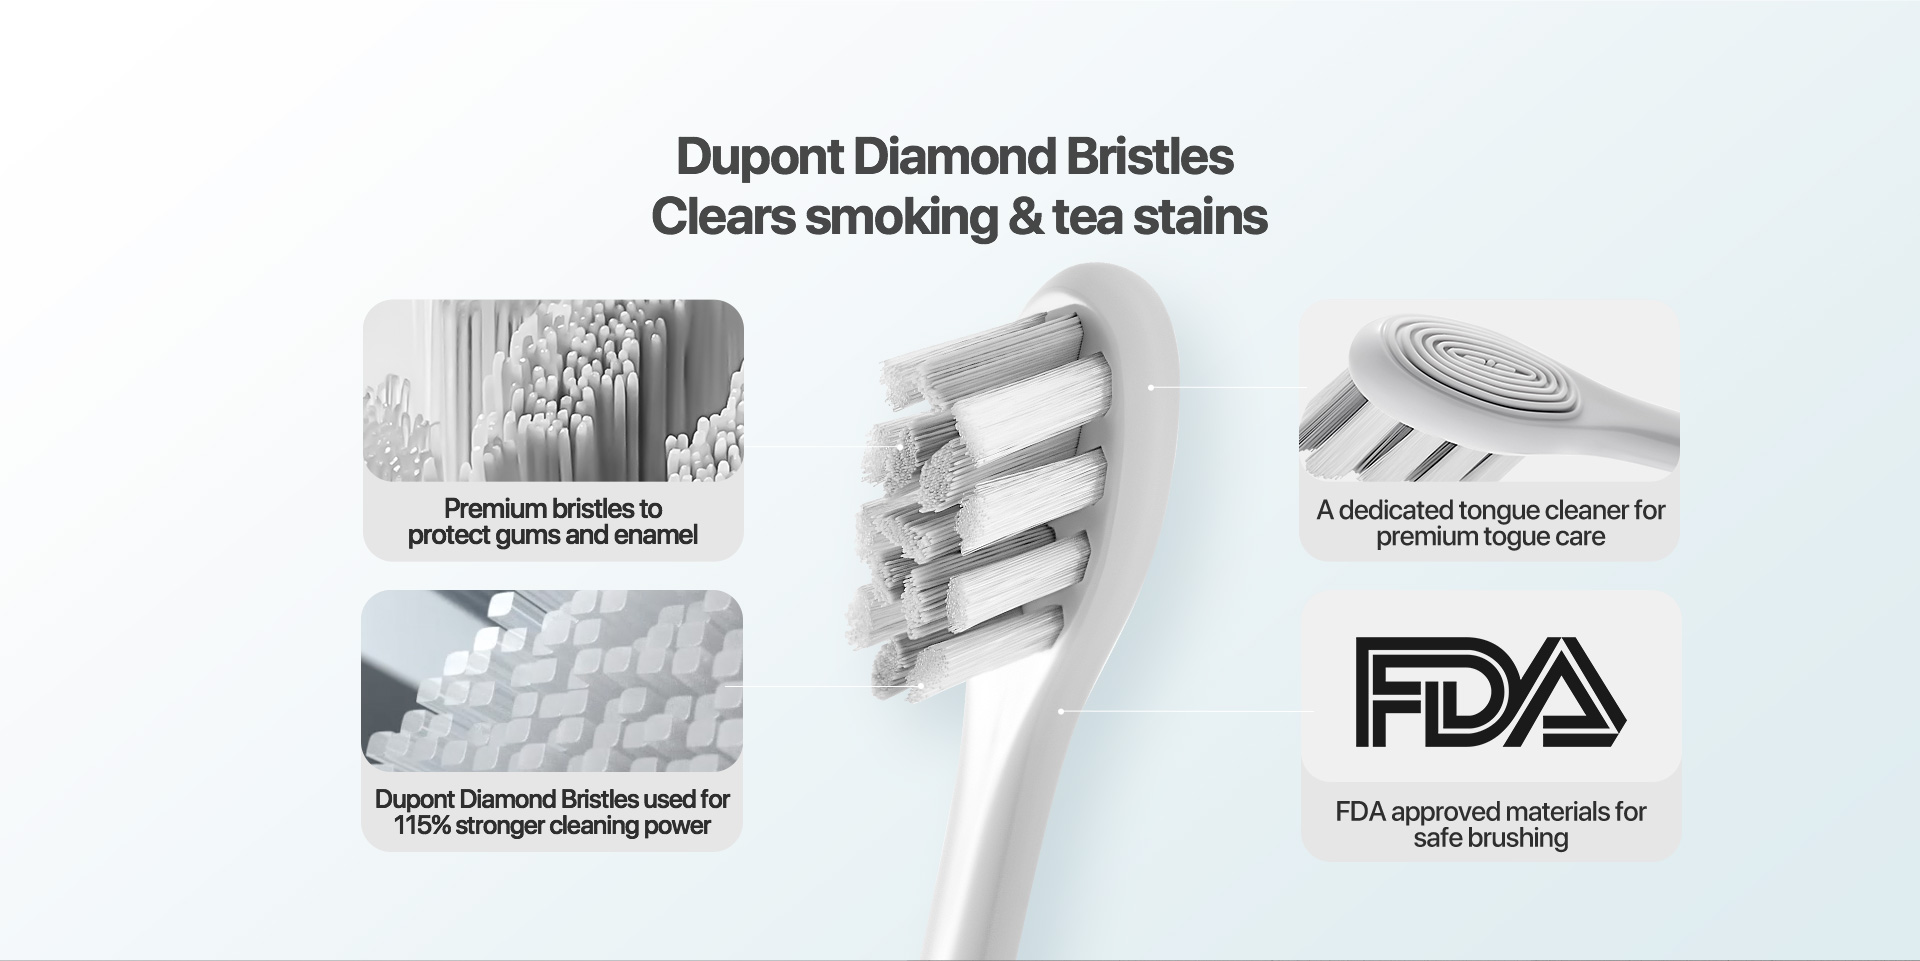 Dupont diamond bristles clears smoking &tea stains